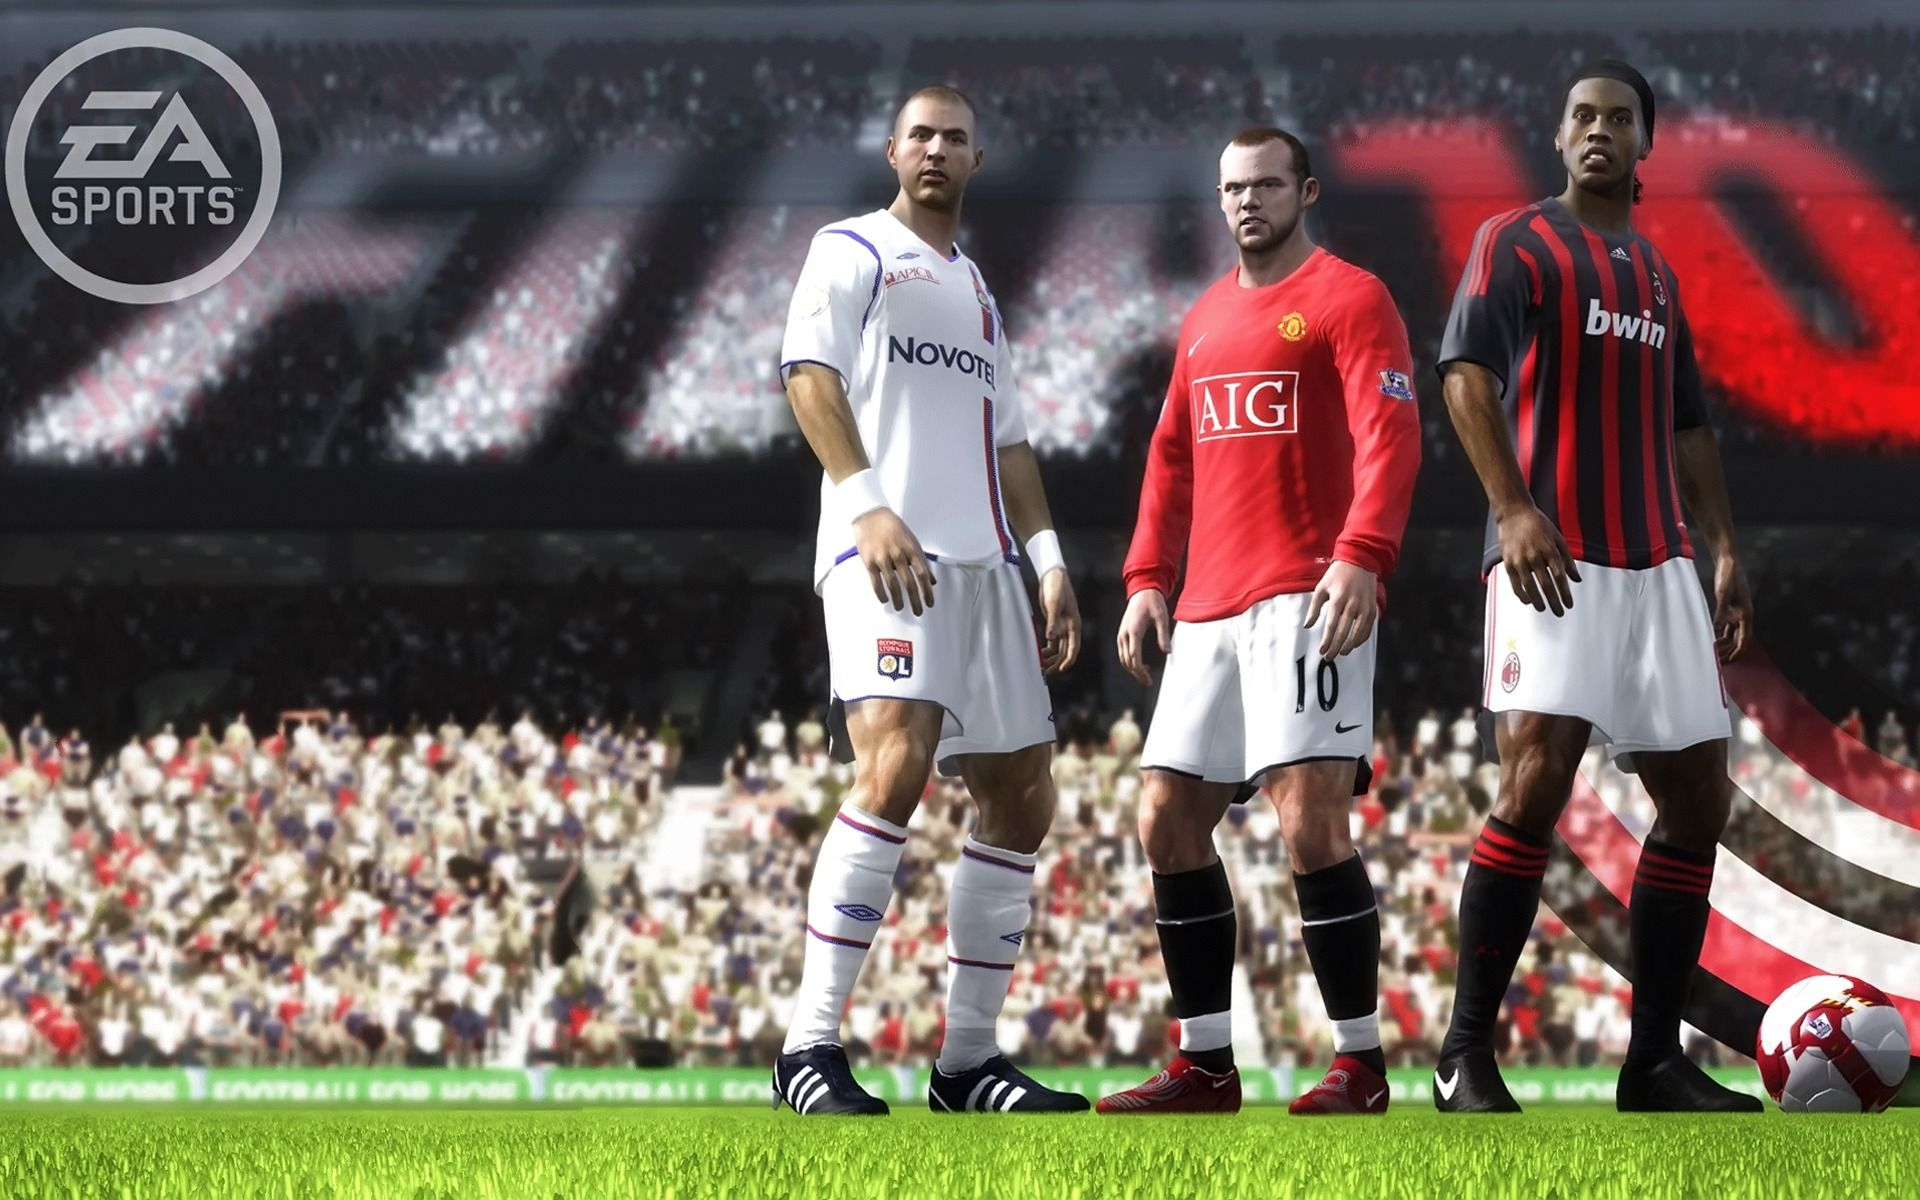 Fifa game wallpapers hd wallpapers pop 1440900 fifa wallpaper 49 fifa game wallpapers hd wallpapers pop 1440900 fifa wallpaper 49 wallpapers voltagebd Gallery